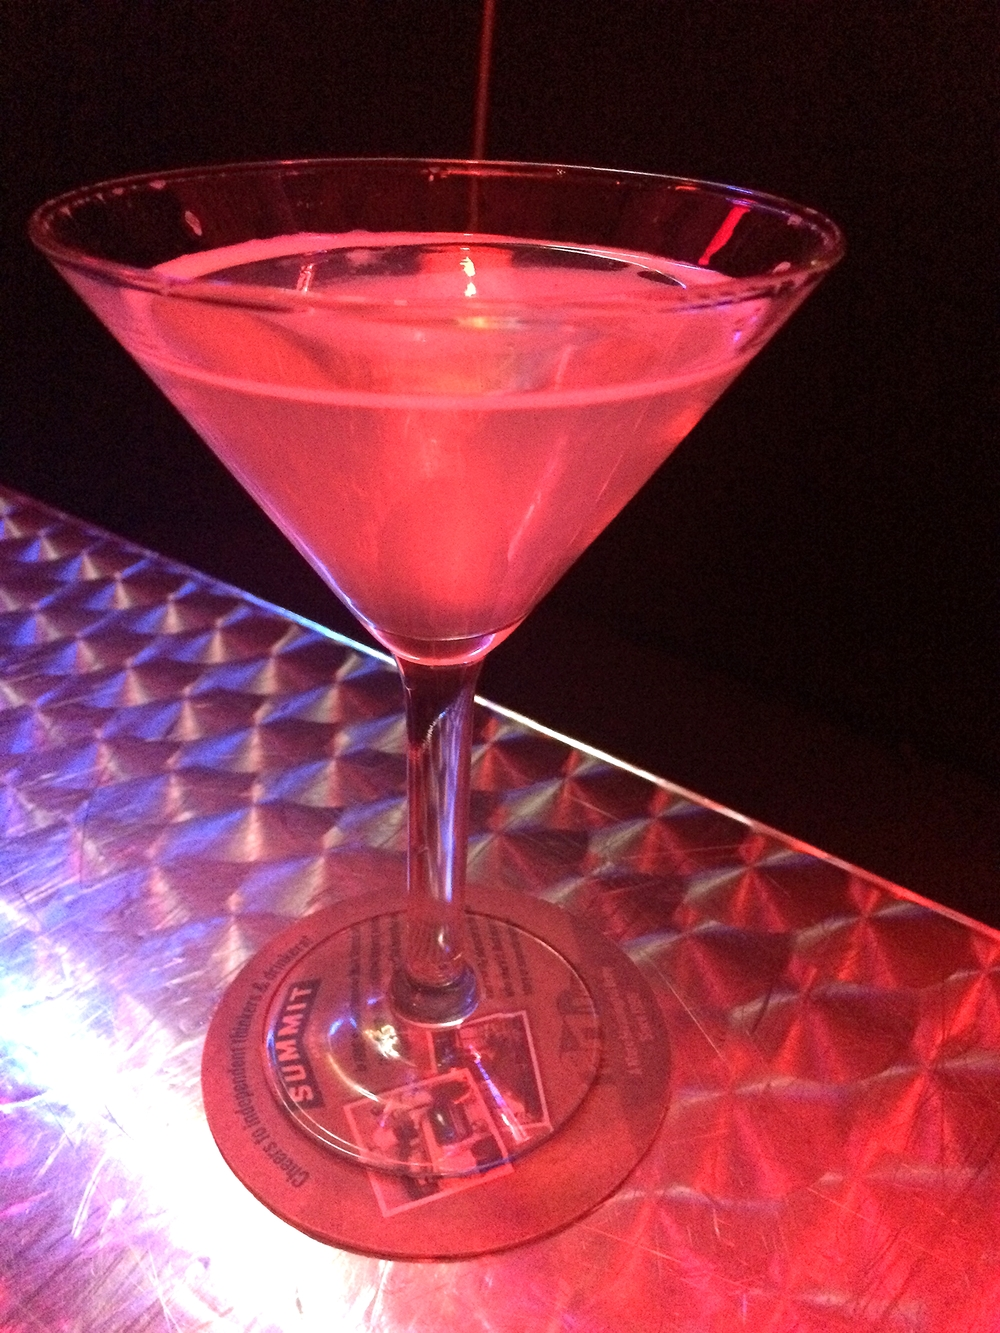 The Pixie Stick Martini.  Wha-what!                                                                                                                                                                                    Photo by Lynne Everson